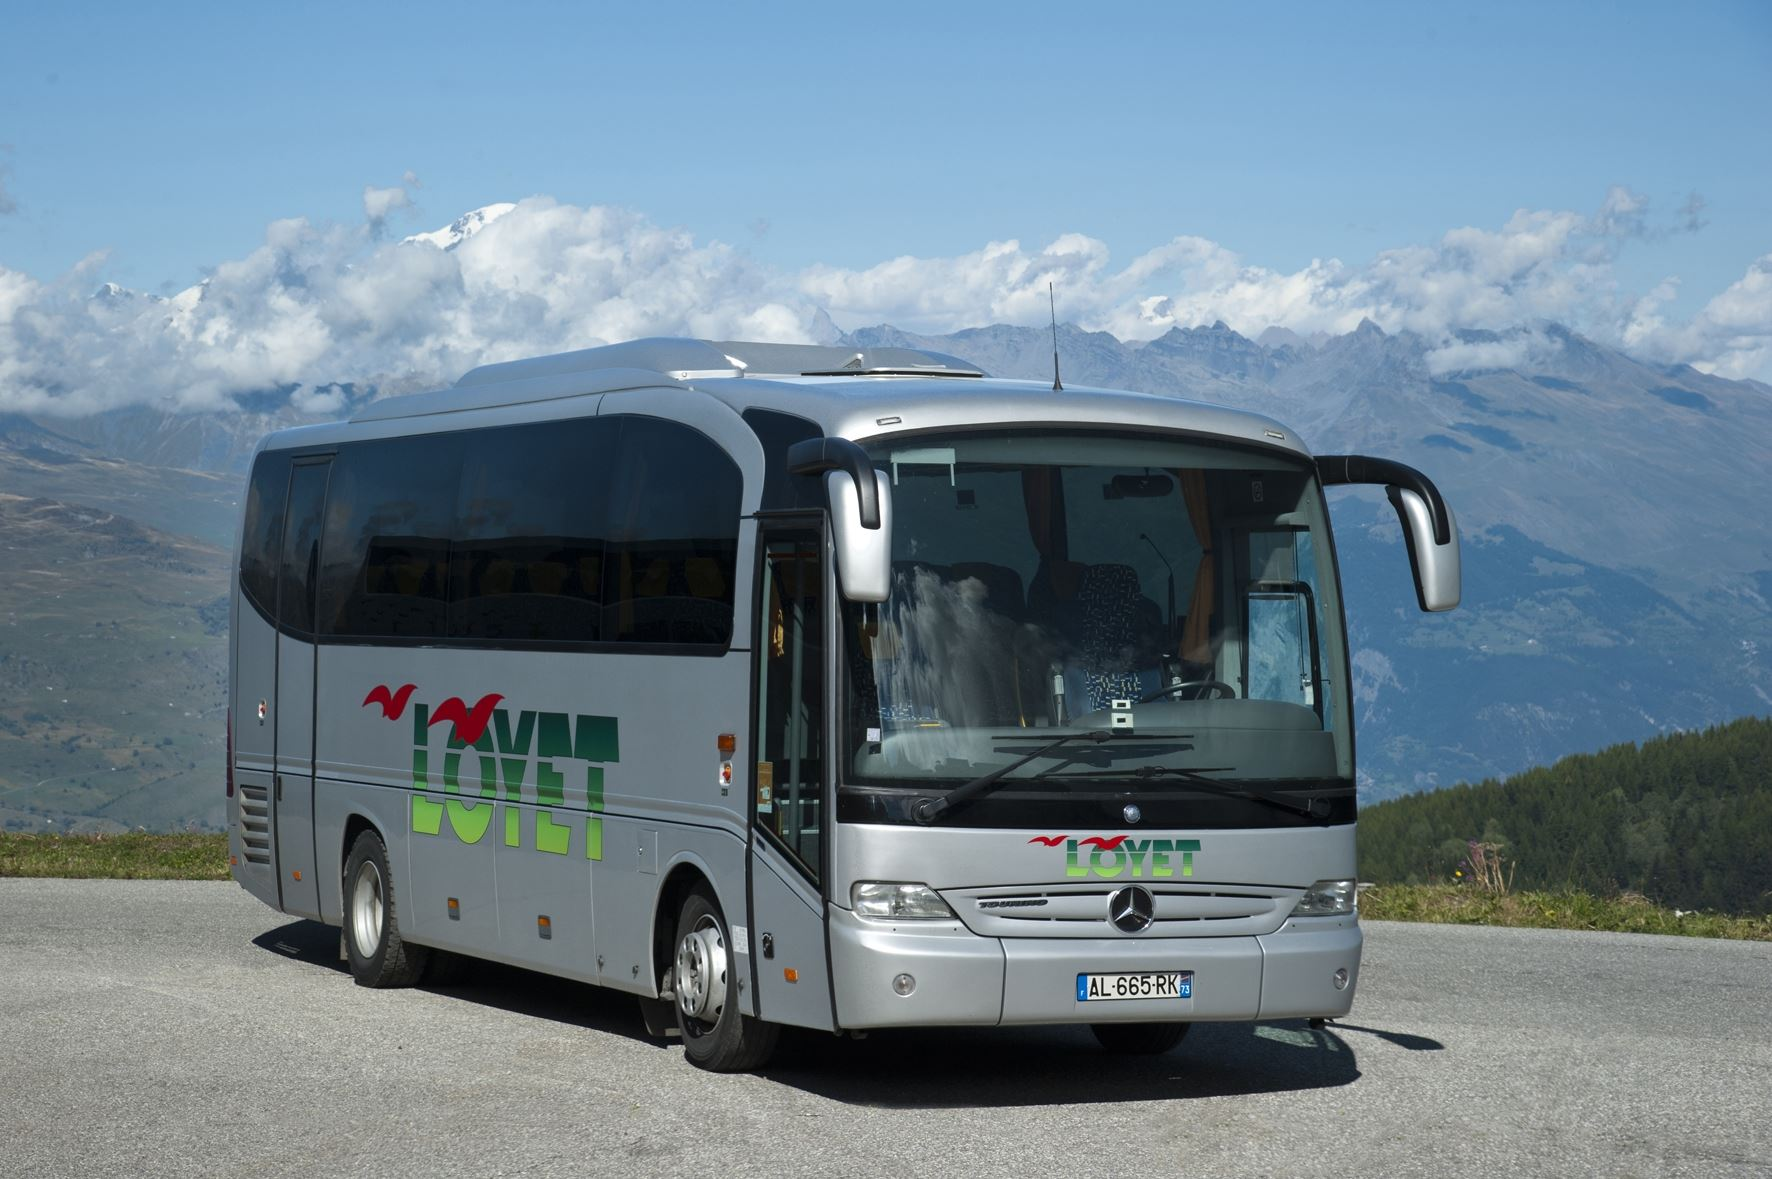 FRIDAY BUS TRANSFER FROM VAL THORENS TO GENEVA AIRPORT